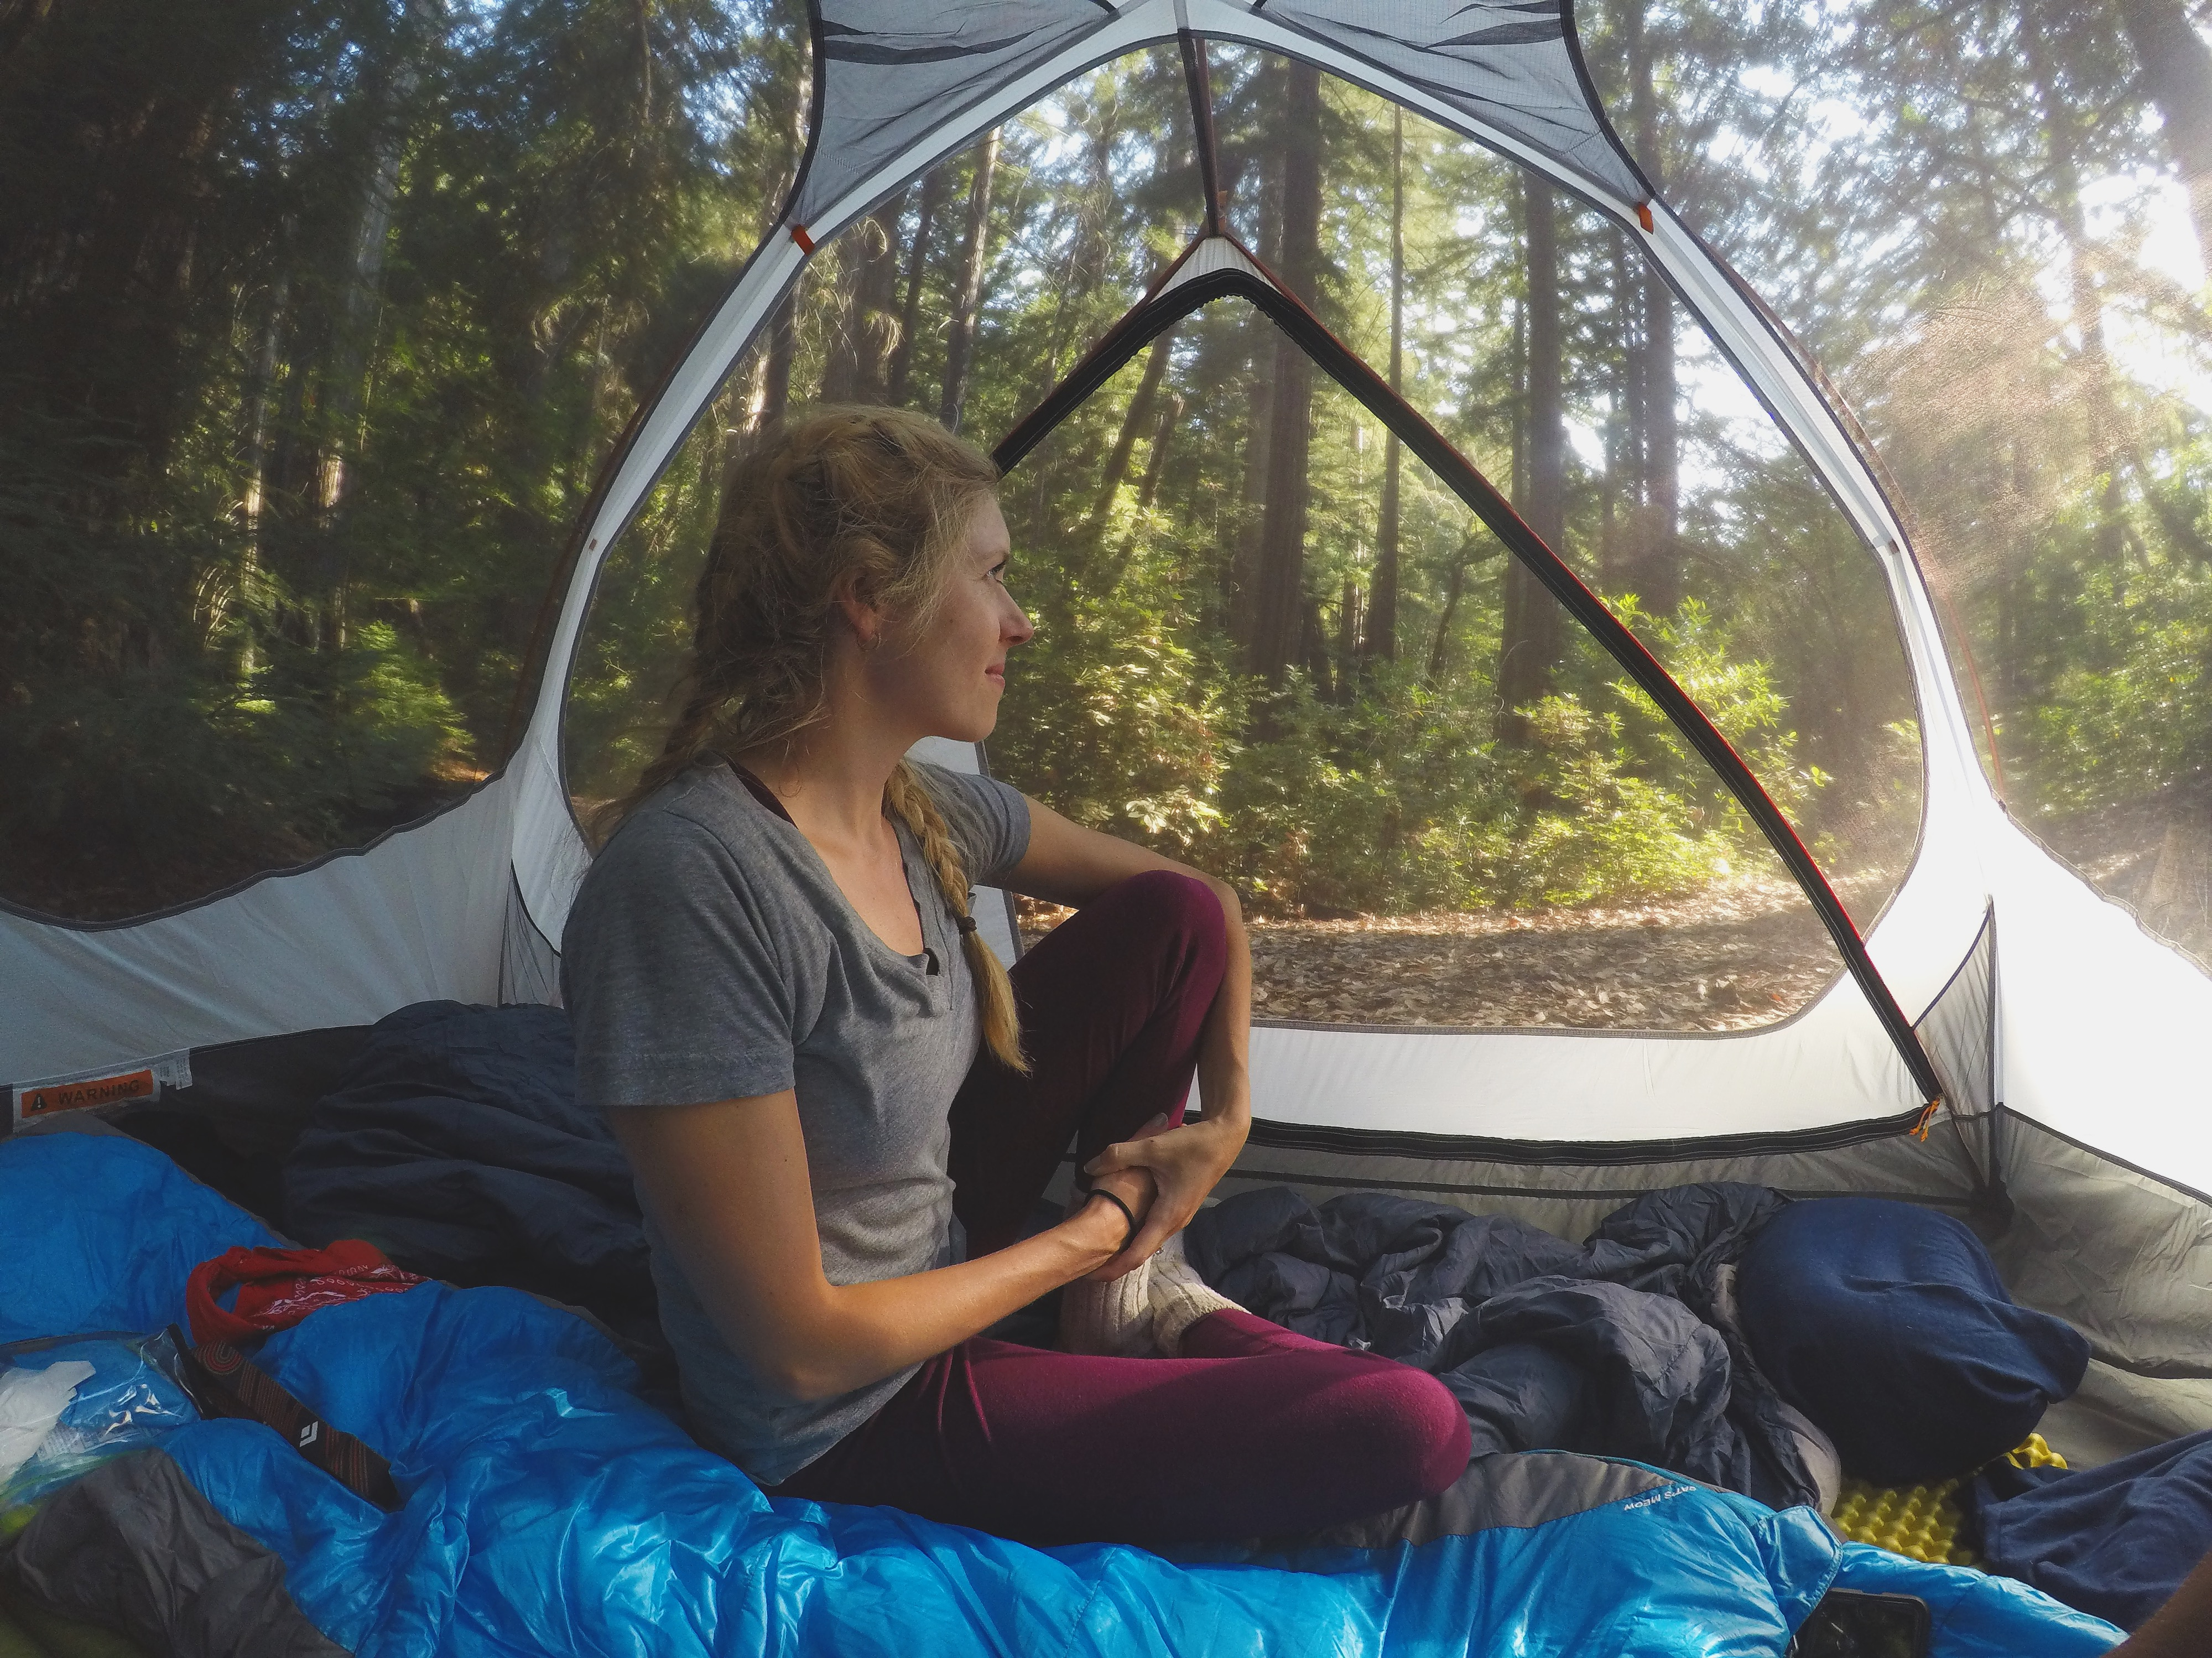 Girl sitting in tent